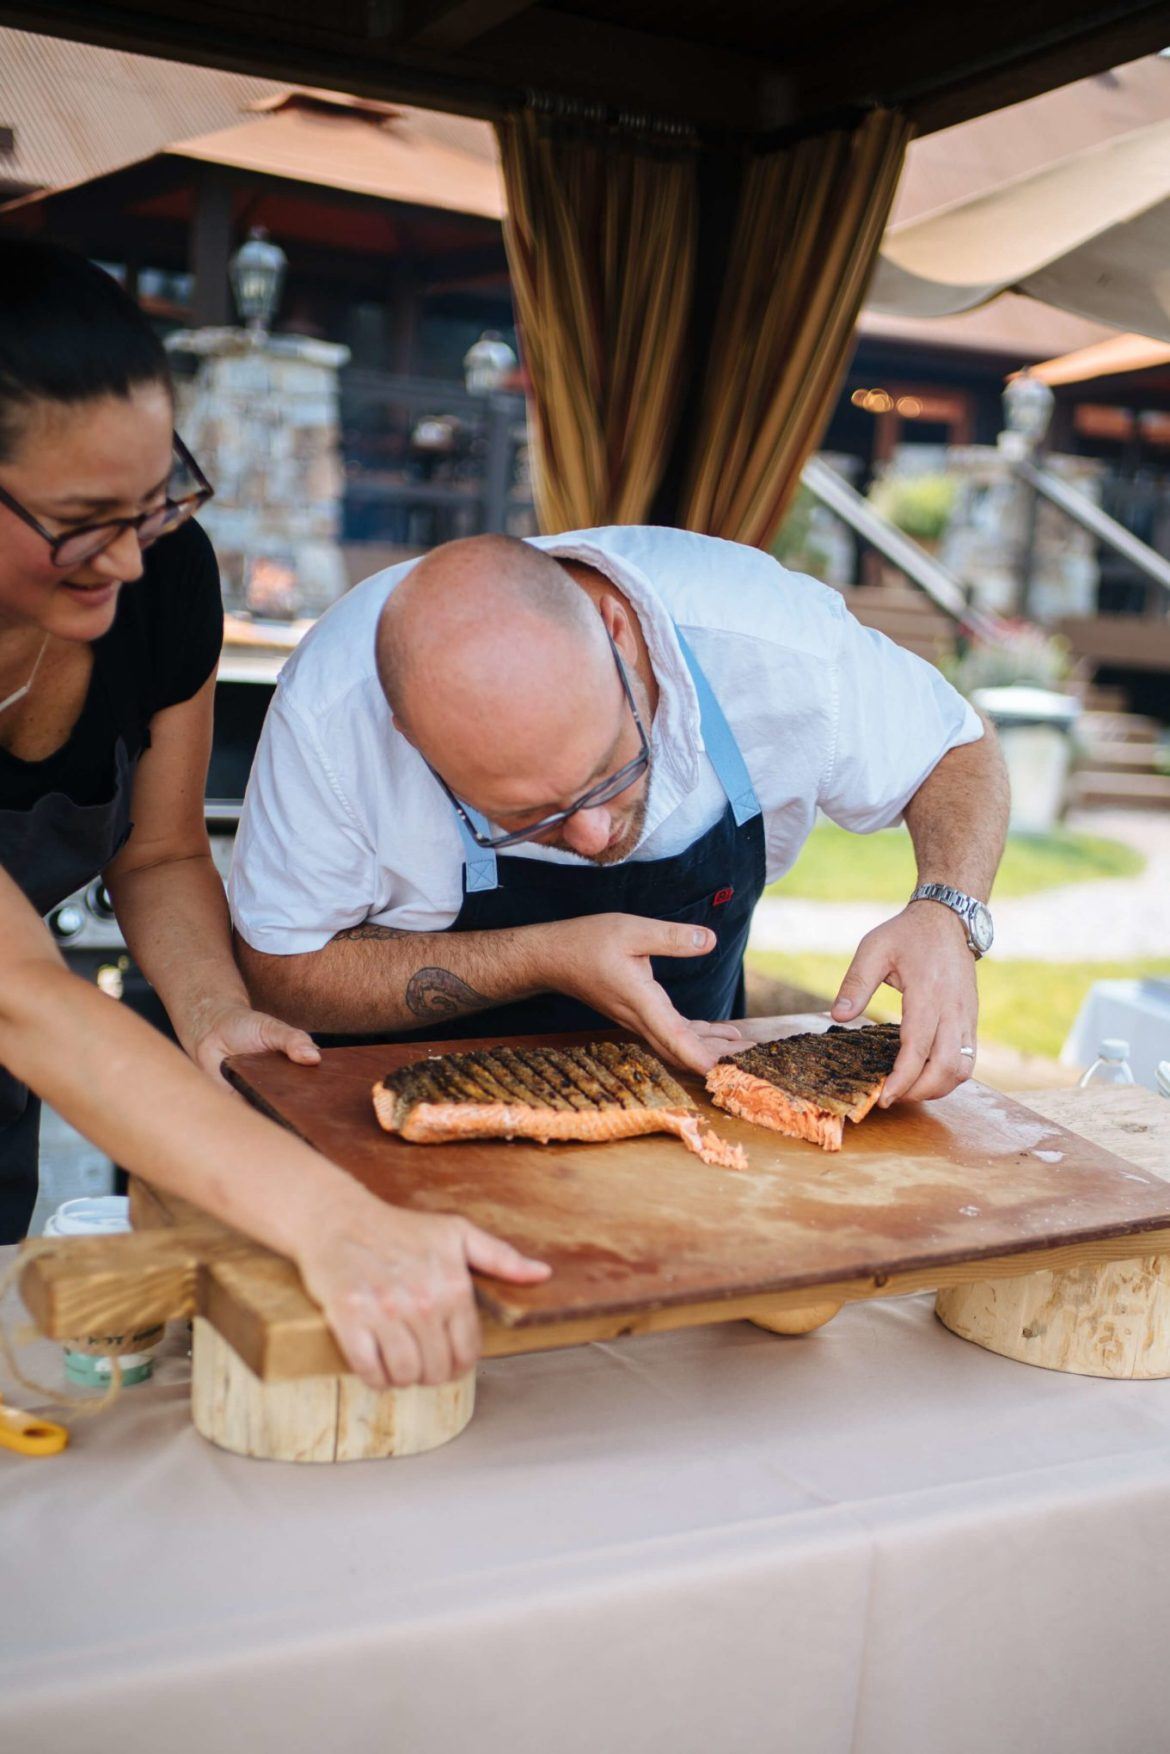 How to grill salmon with skin, checking the donees of salmon, how much time on the grill the resort at paws up, montana glamping, cookbook live, greg denton OX restaurant Portland, The Taste Edit